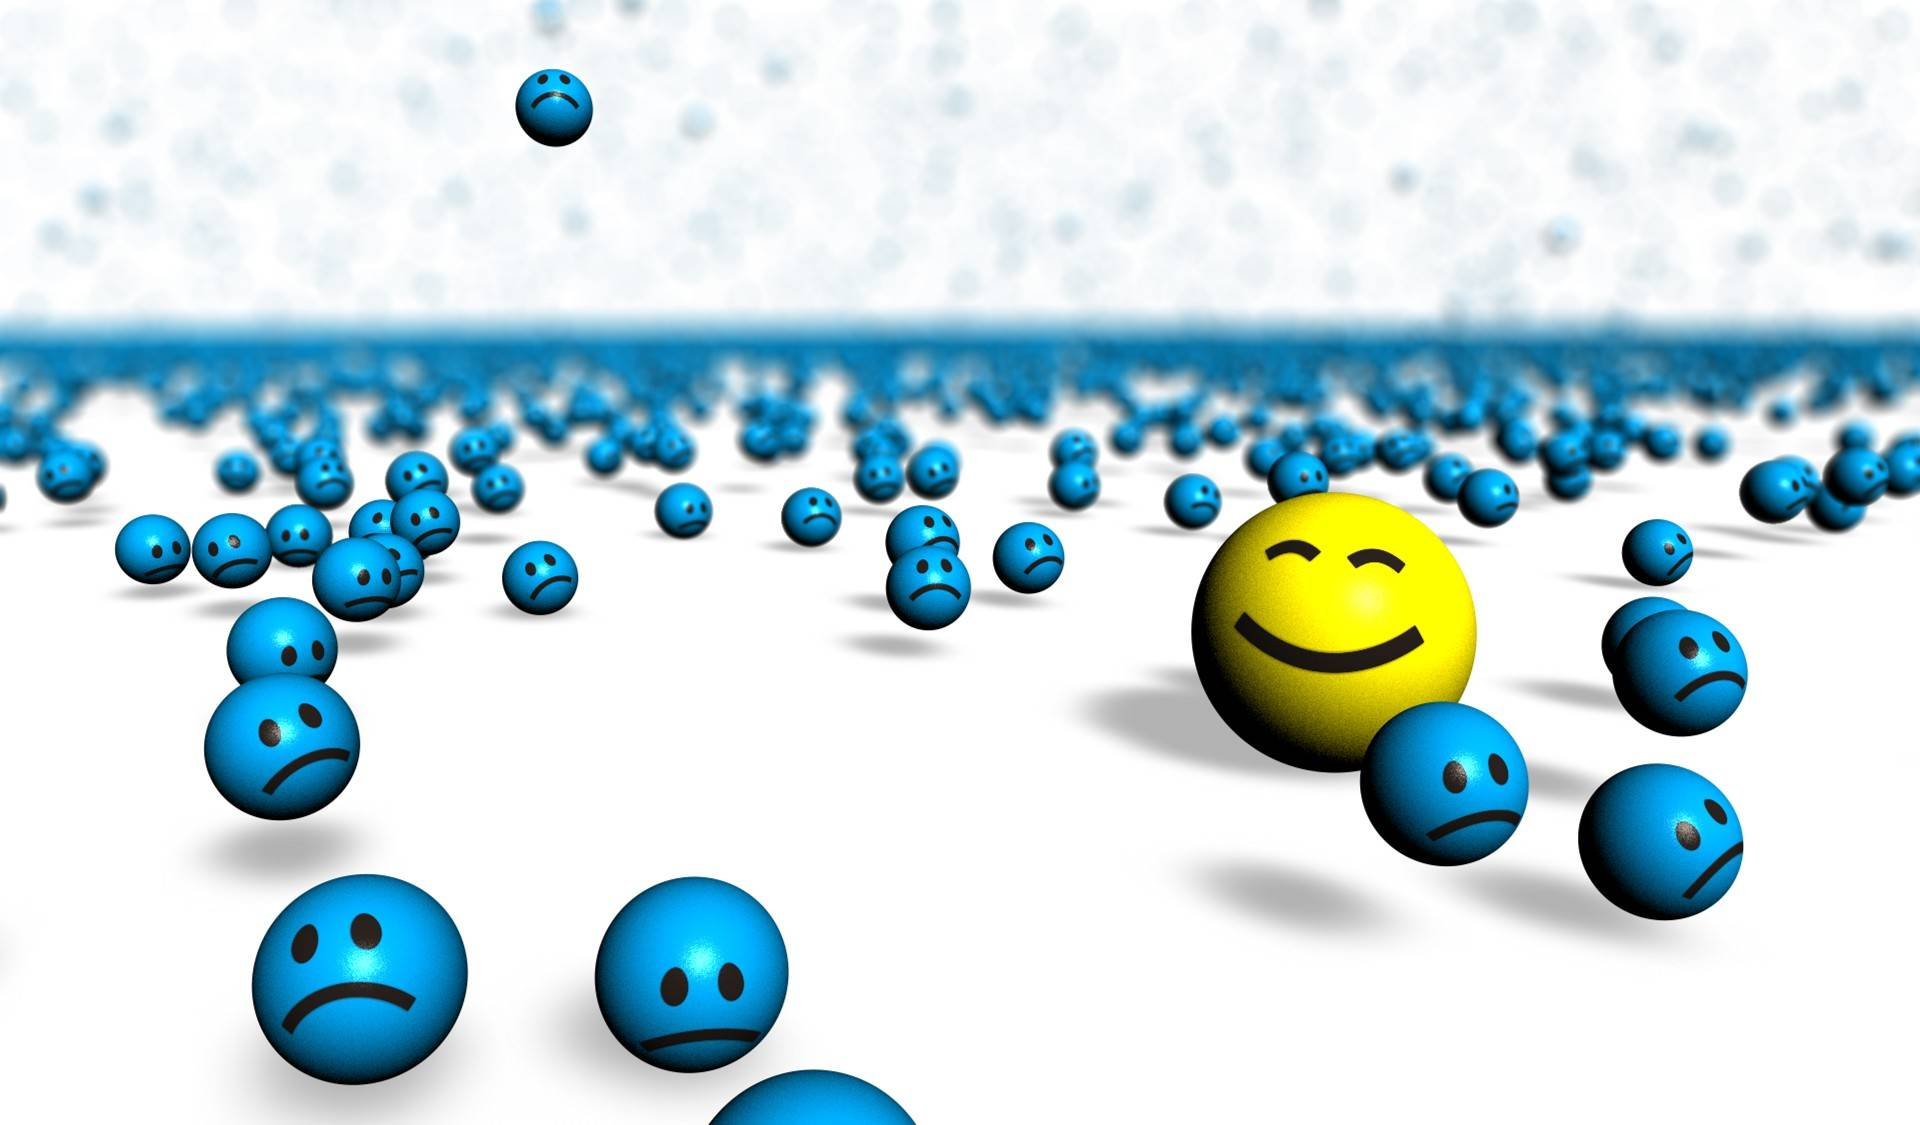 Hd Smiley Face Wallpaper: Smiley Face Wallpapers